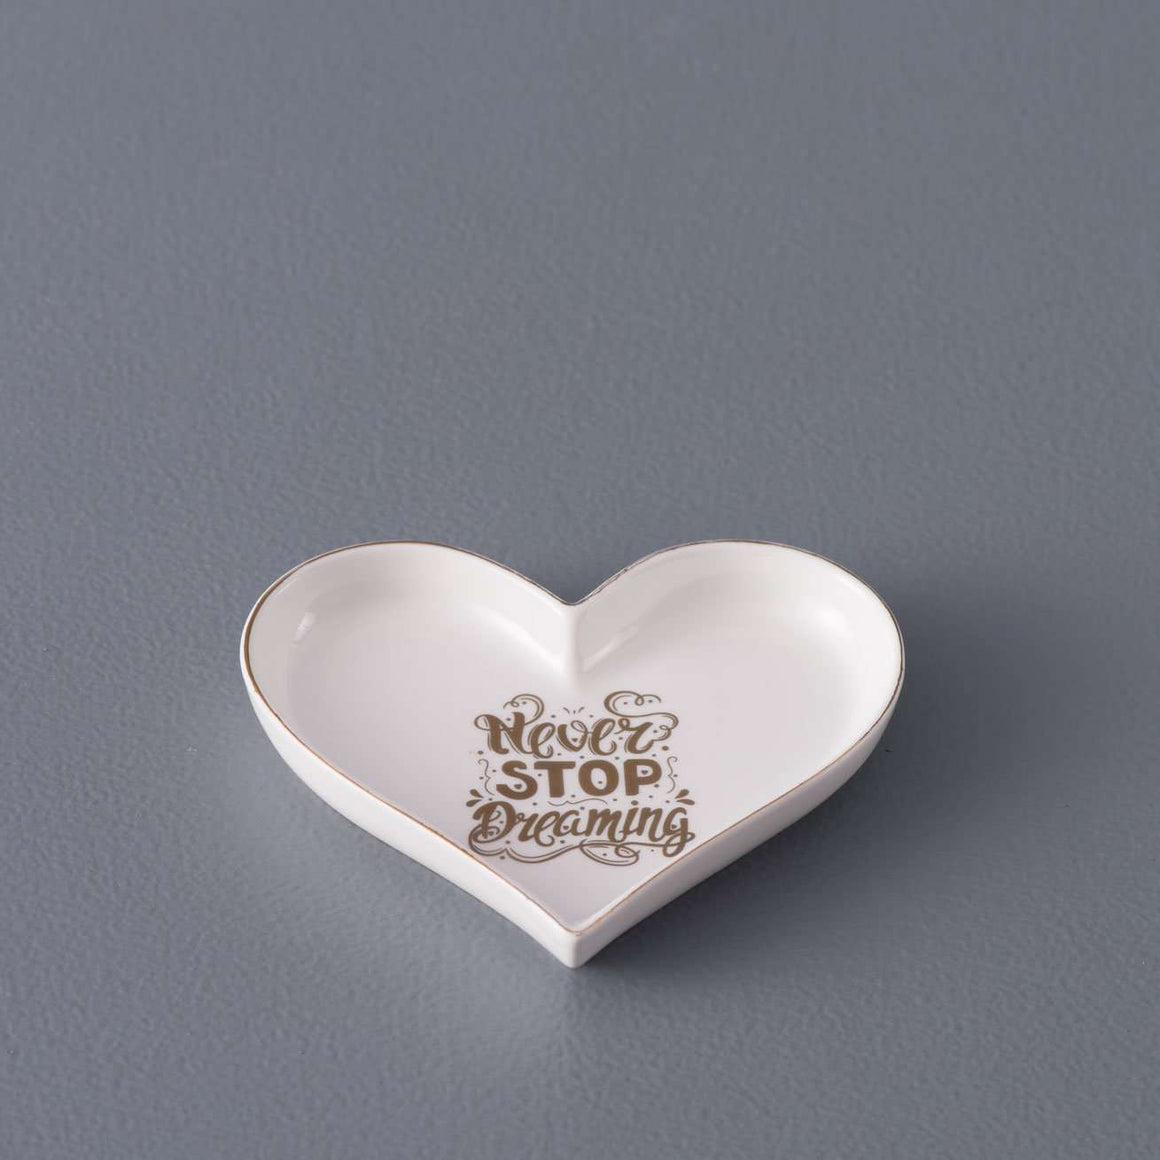 'Never Stop Dreaming' Heart Shaped Ring Dish